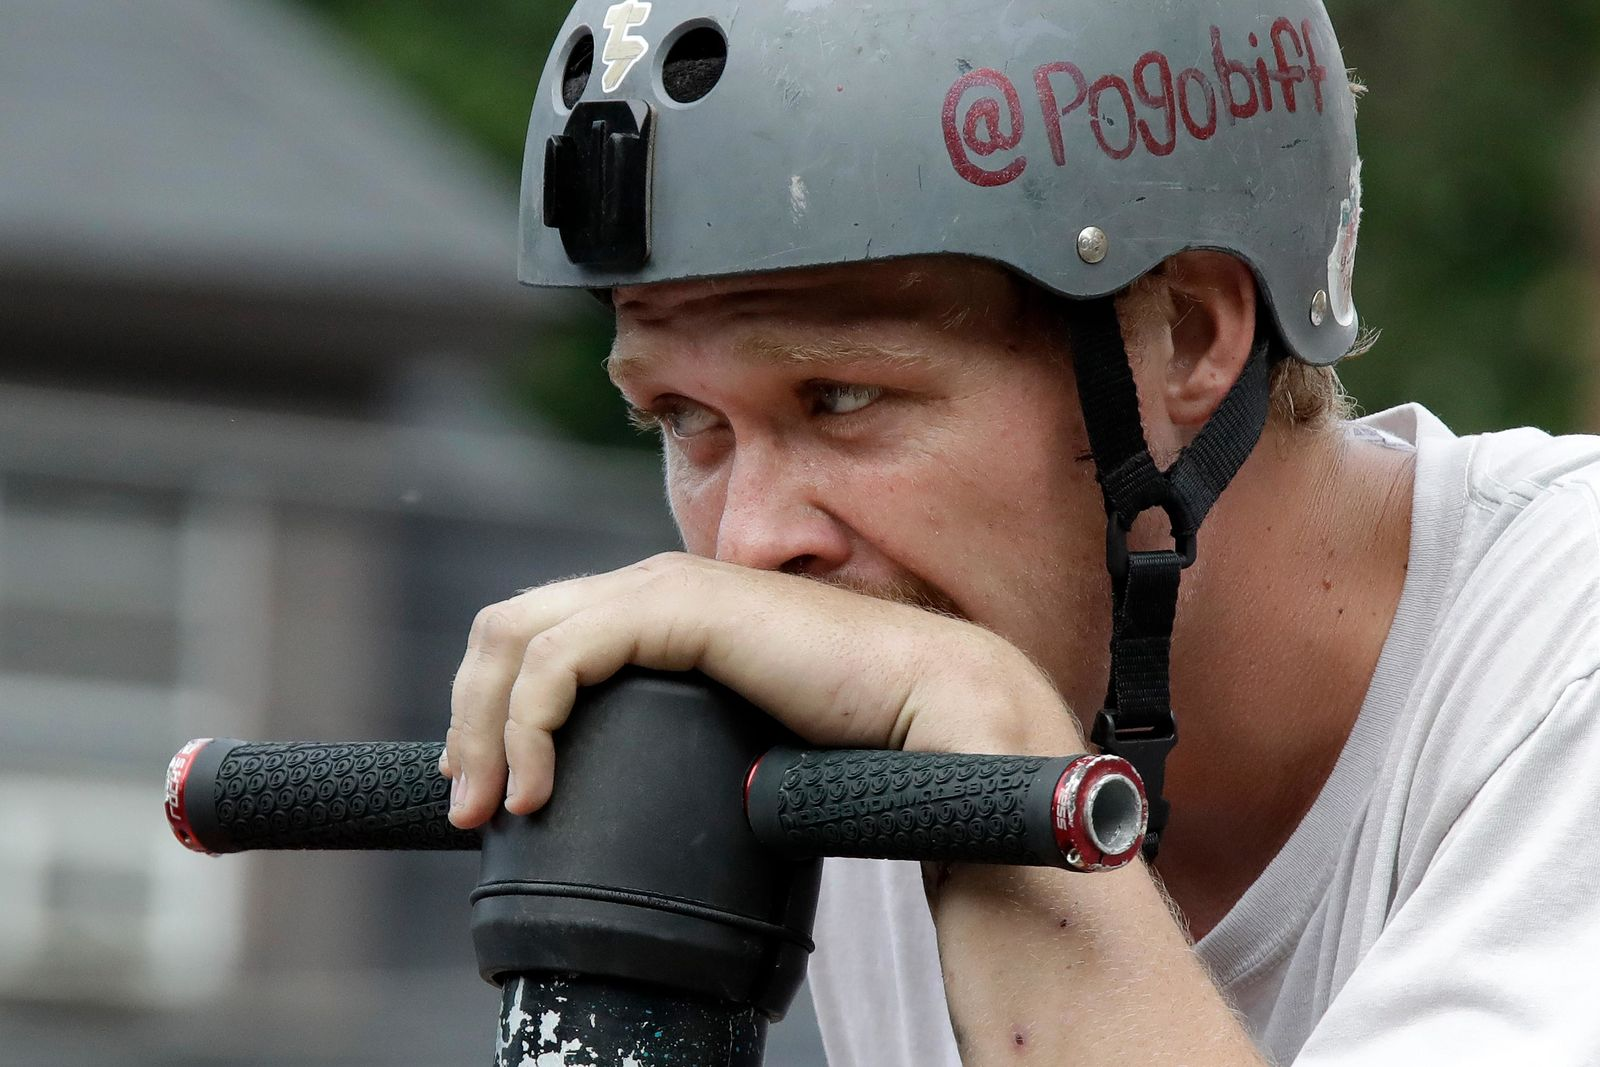 Biff Hutchison, of Burley, Idaho, takes a breather during his performance during Pogopalooza, The World Championships of Pogo in Wilkinsburg, Pa., Saturday, July 20, 2019. (AP Photo/Gene J. Puskar)